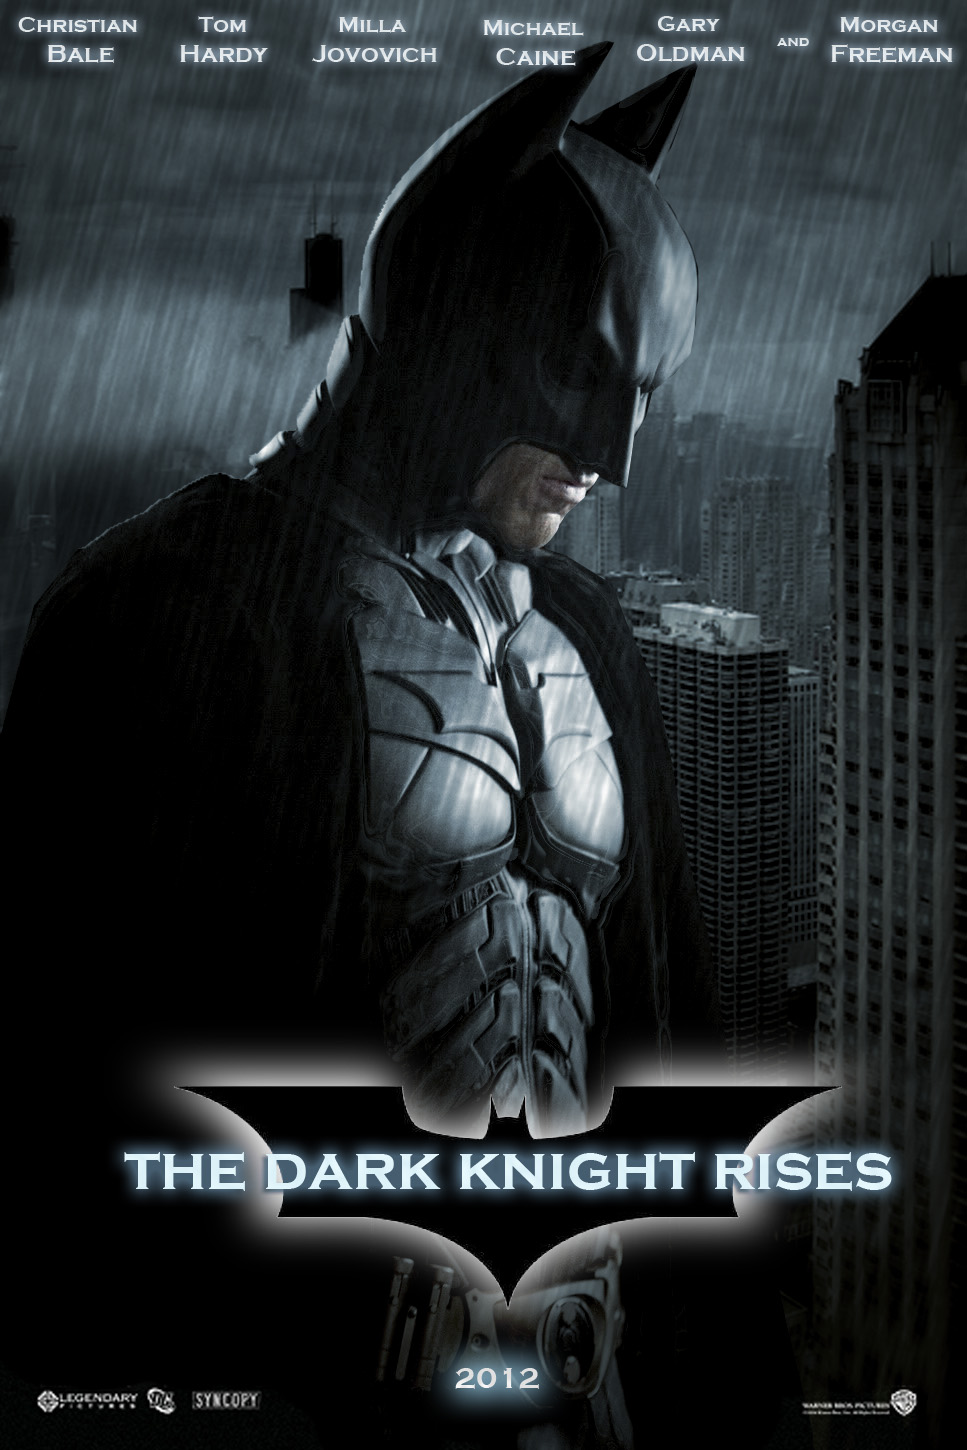 http://stallioncornell.com/wp-content/uploads/2012/07/Batman-The-Dark-Knight-Rises-the-dark-knight-rises-30411051-967-14502.jpg